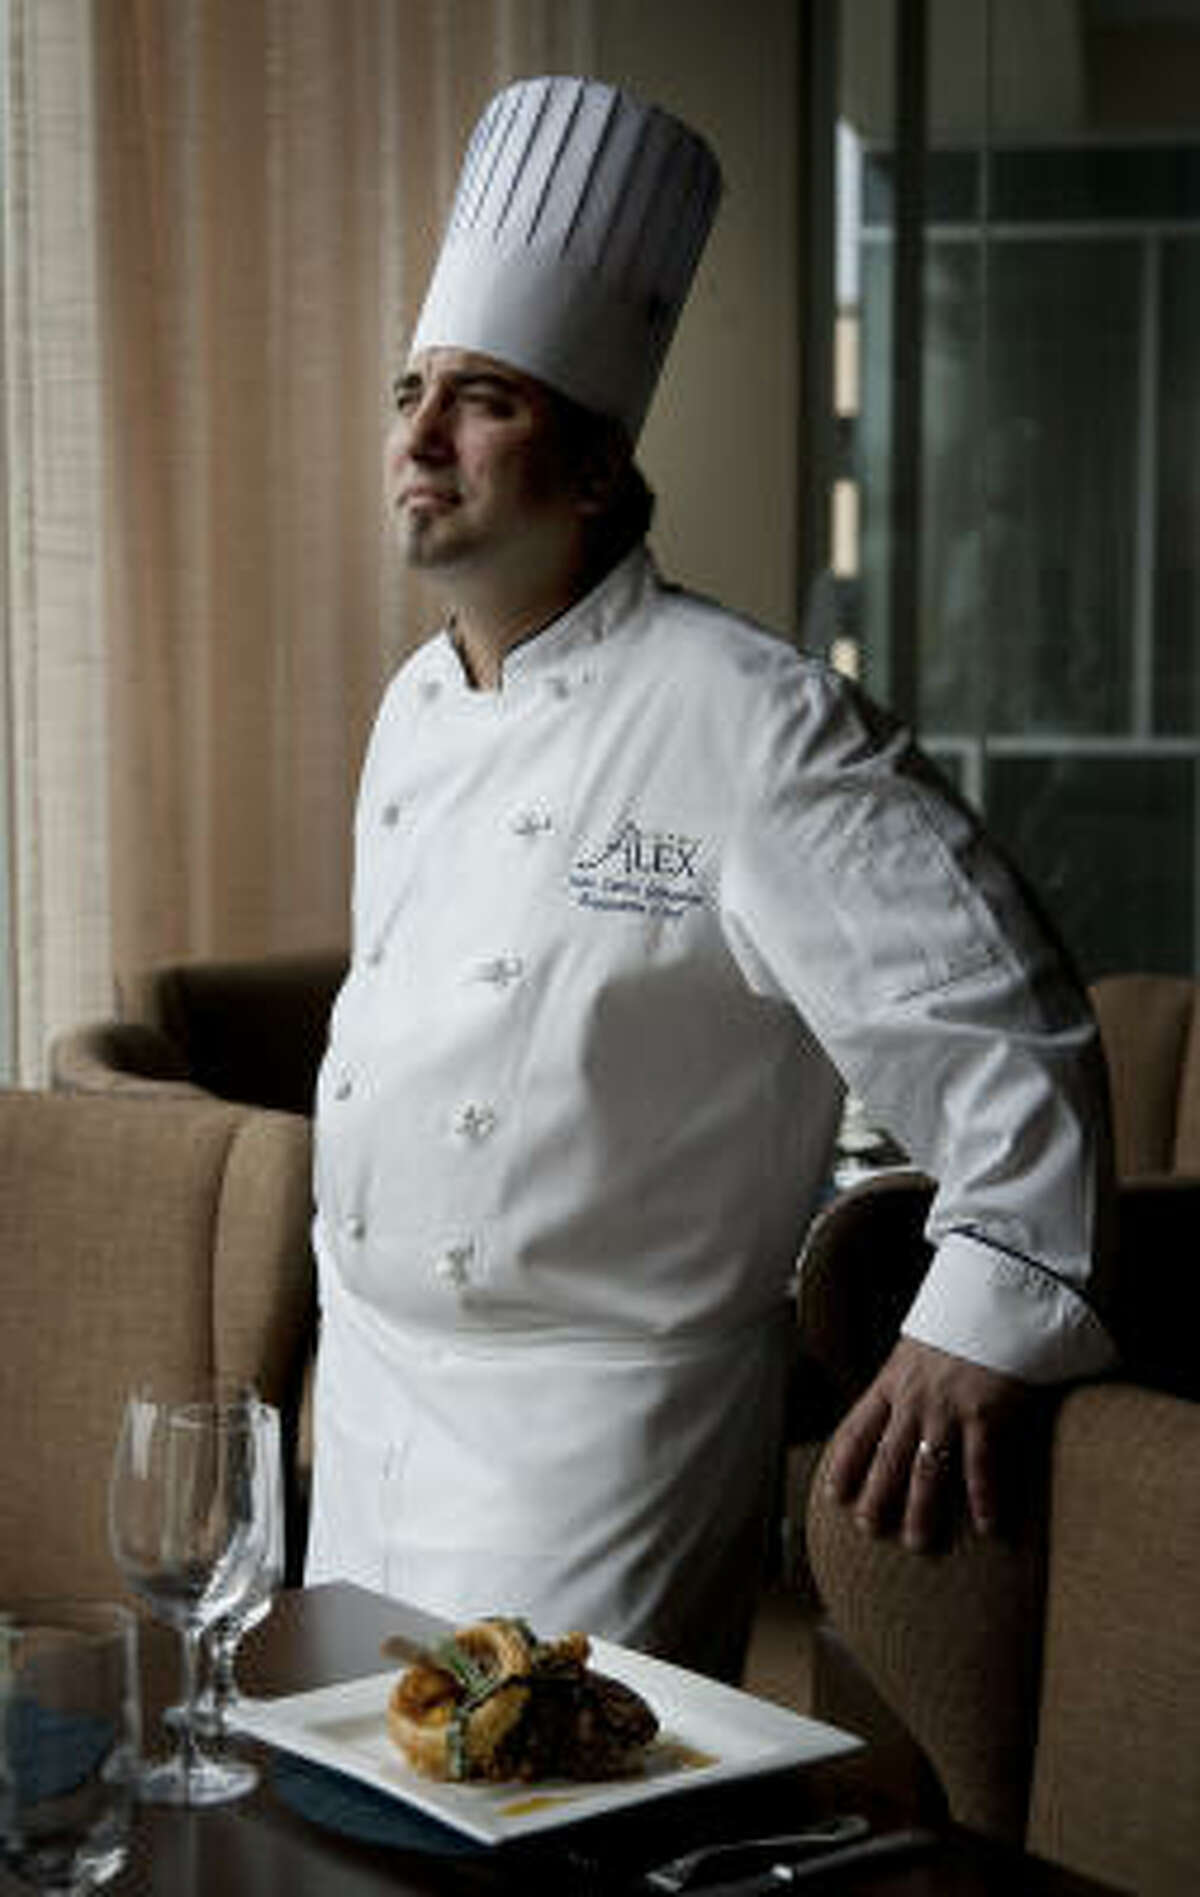 Executive Chef Juan Carlos Gonzalez gives Bistro Alex a voluptuous, old-school New Orleans feel, using plenty of butter and sauces on his dishes.